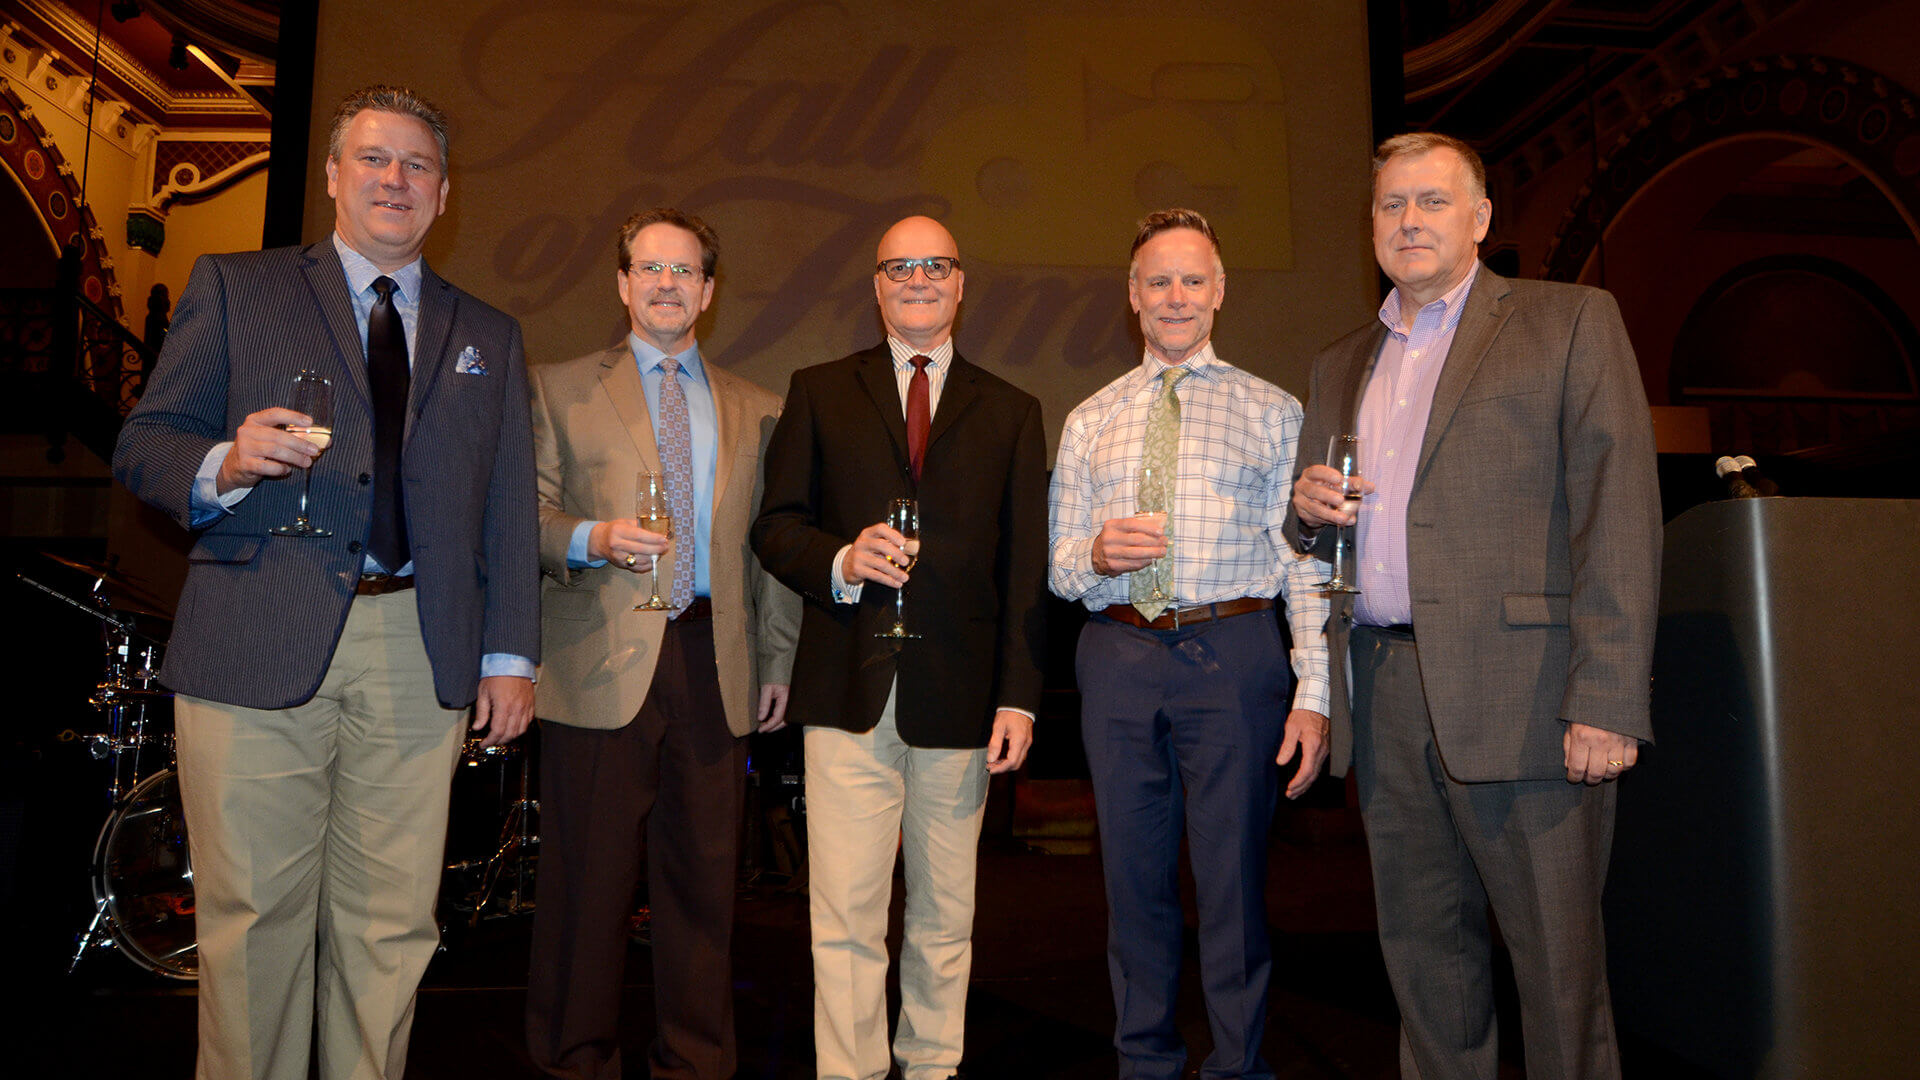 VIDEO: DCI Hall of Fame induction